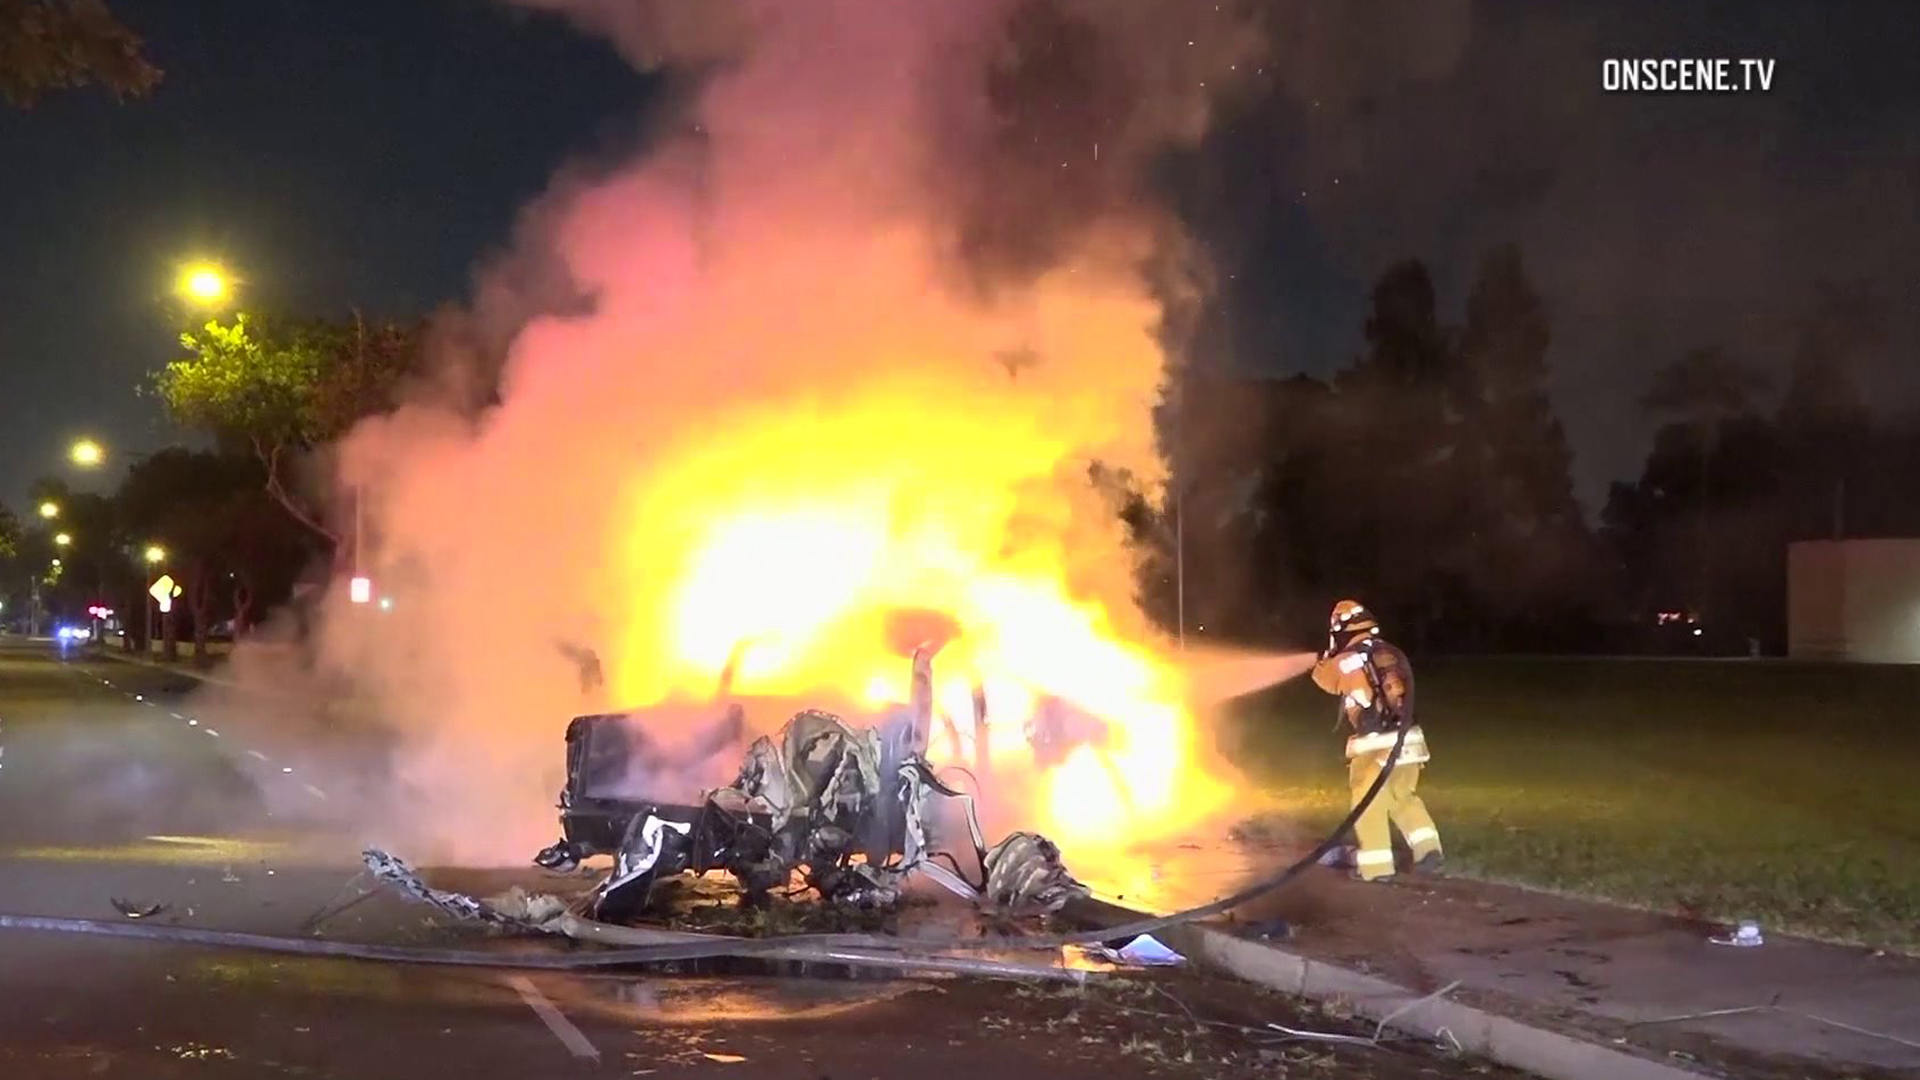 A car was engulfed in flames in Garden Grove on Oct. 23, 2018. (Credit: OnScene.TV)